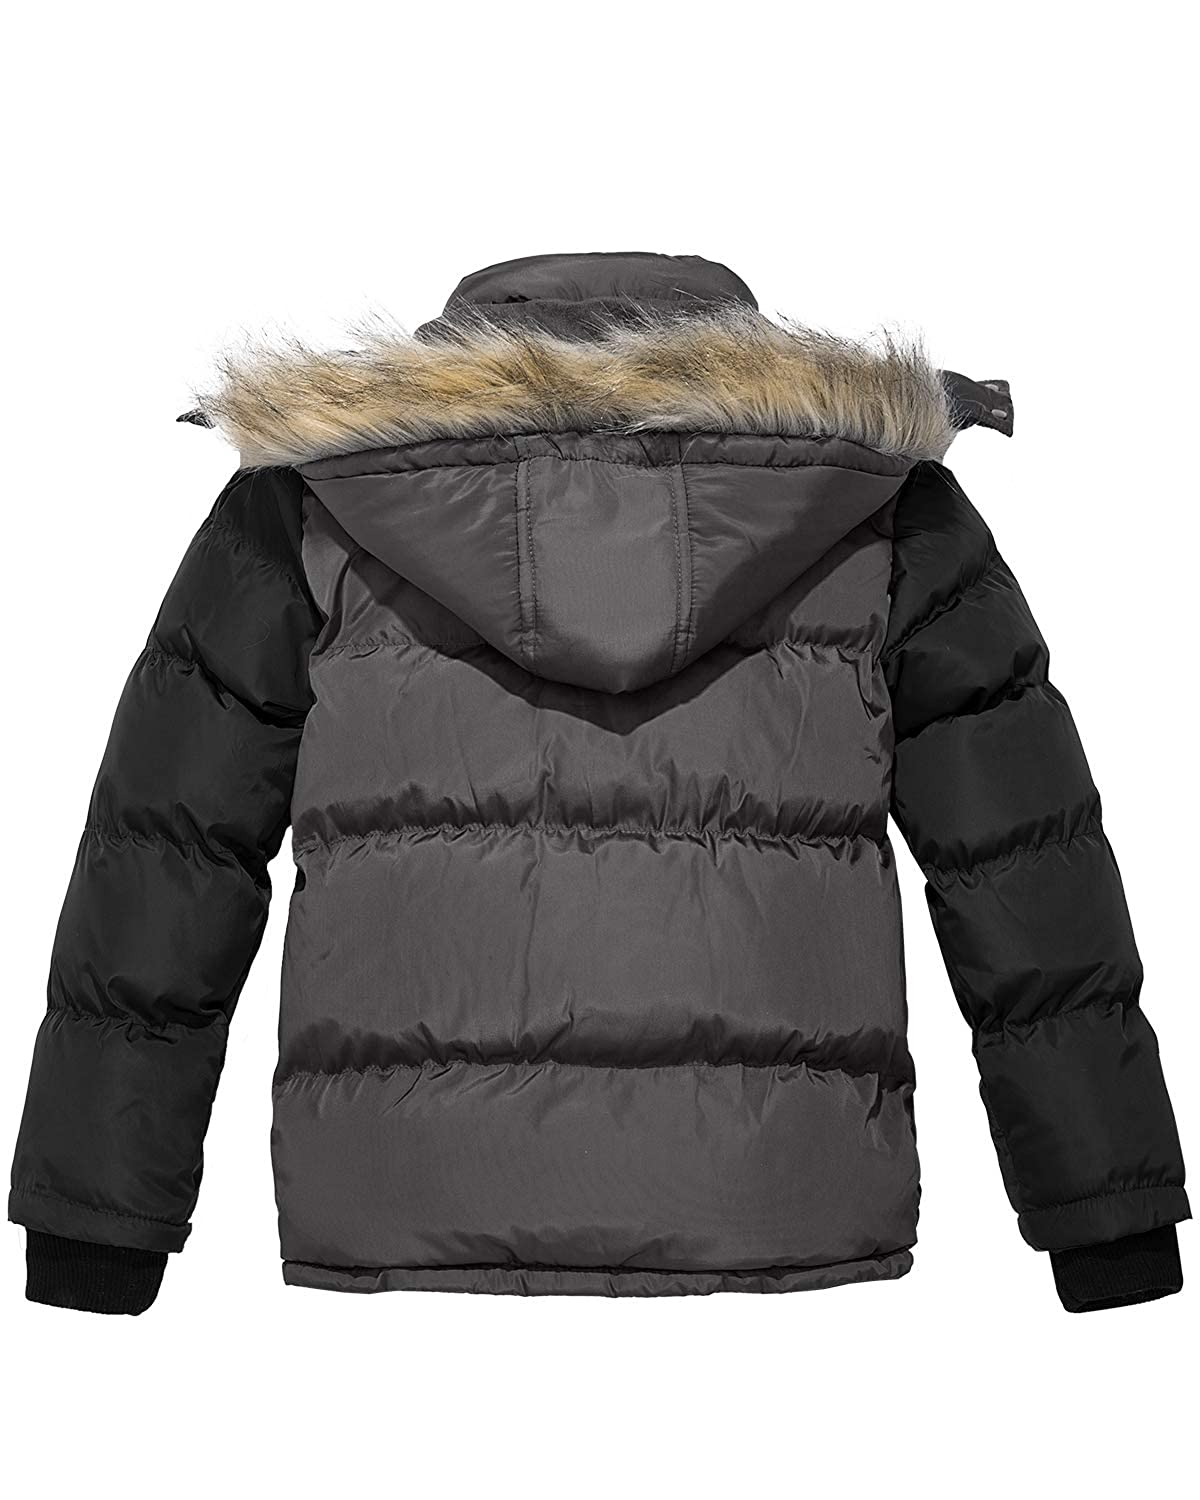 Wantdo Boys Hooded Puffer Jacket Thick Winter Coat Warm with Reflective Stripe